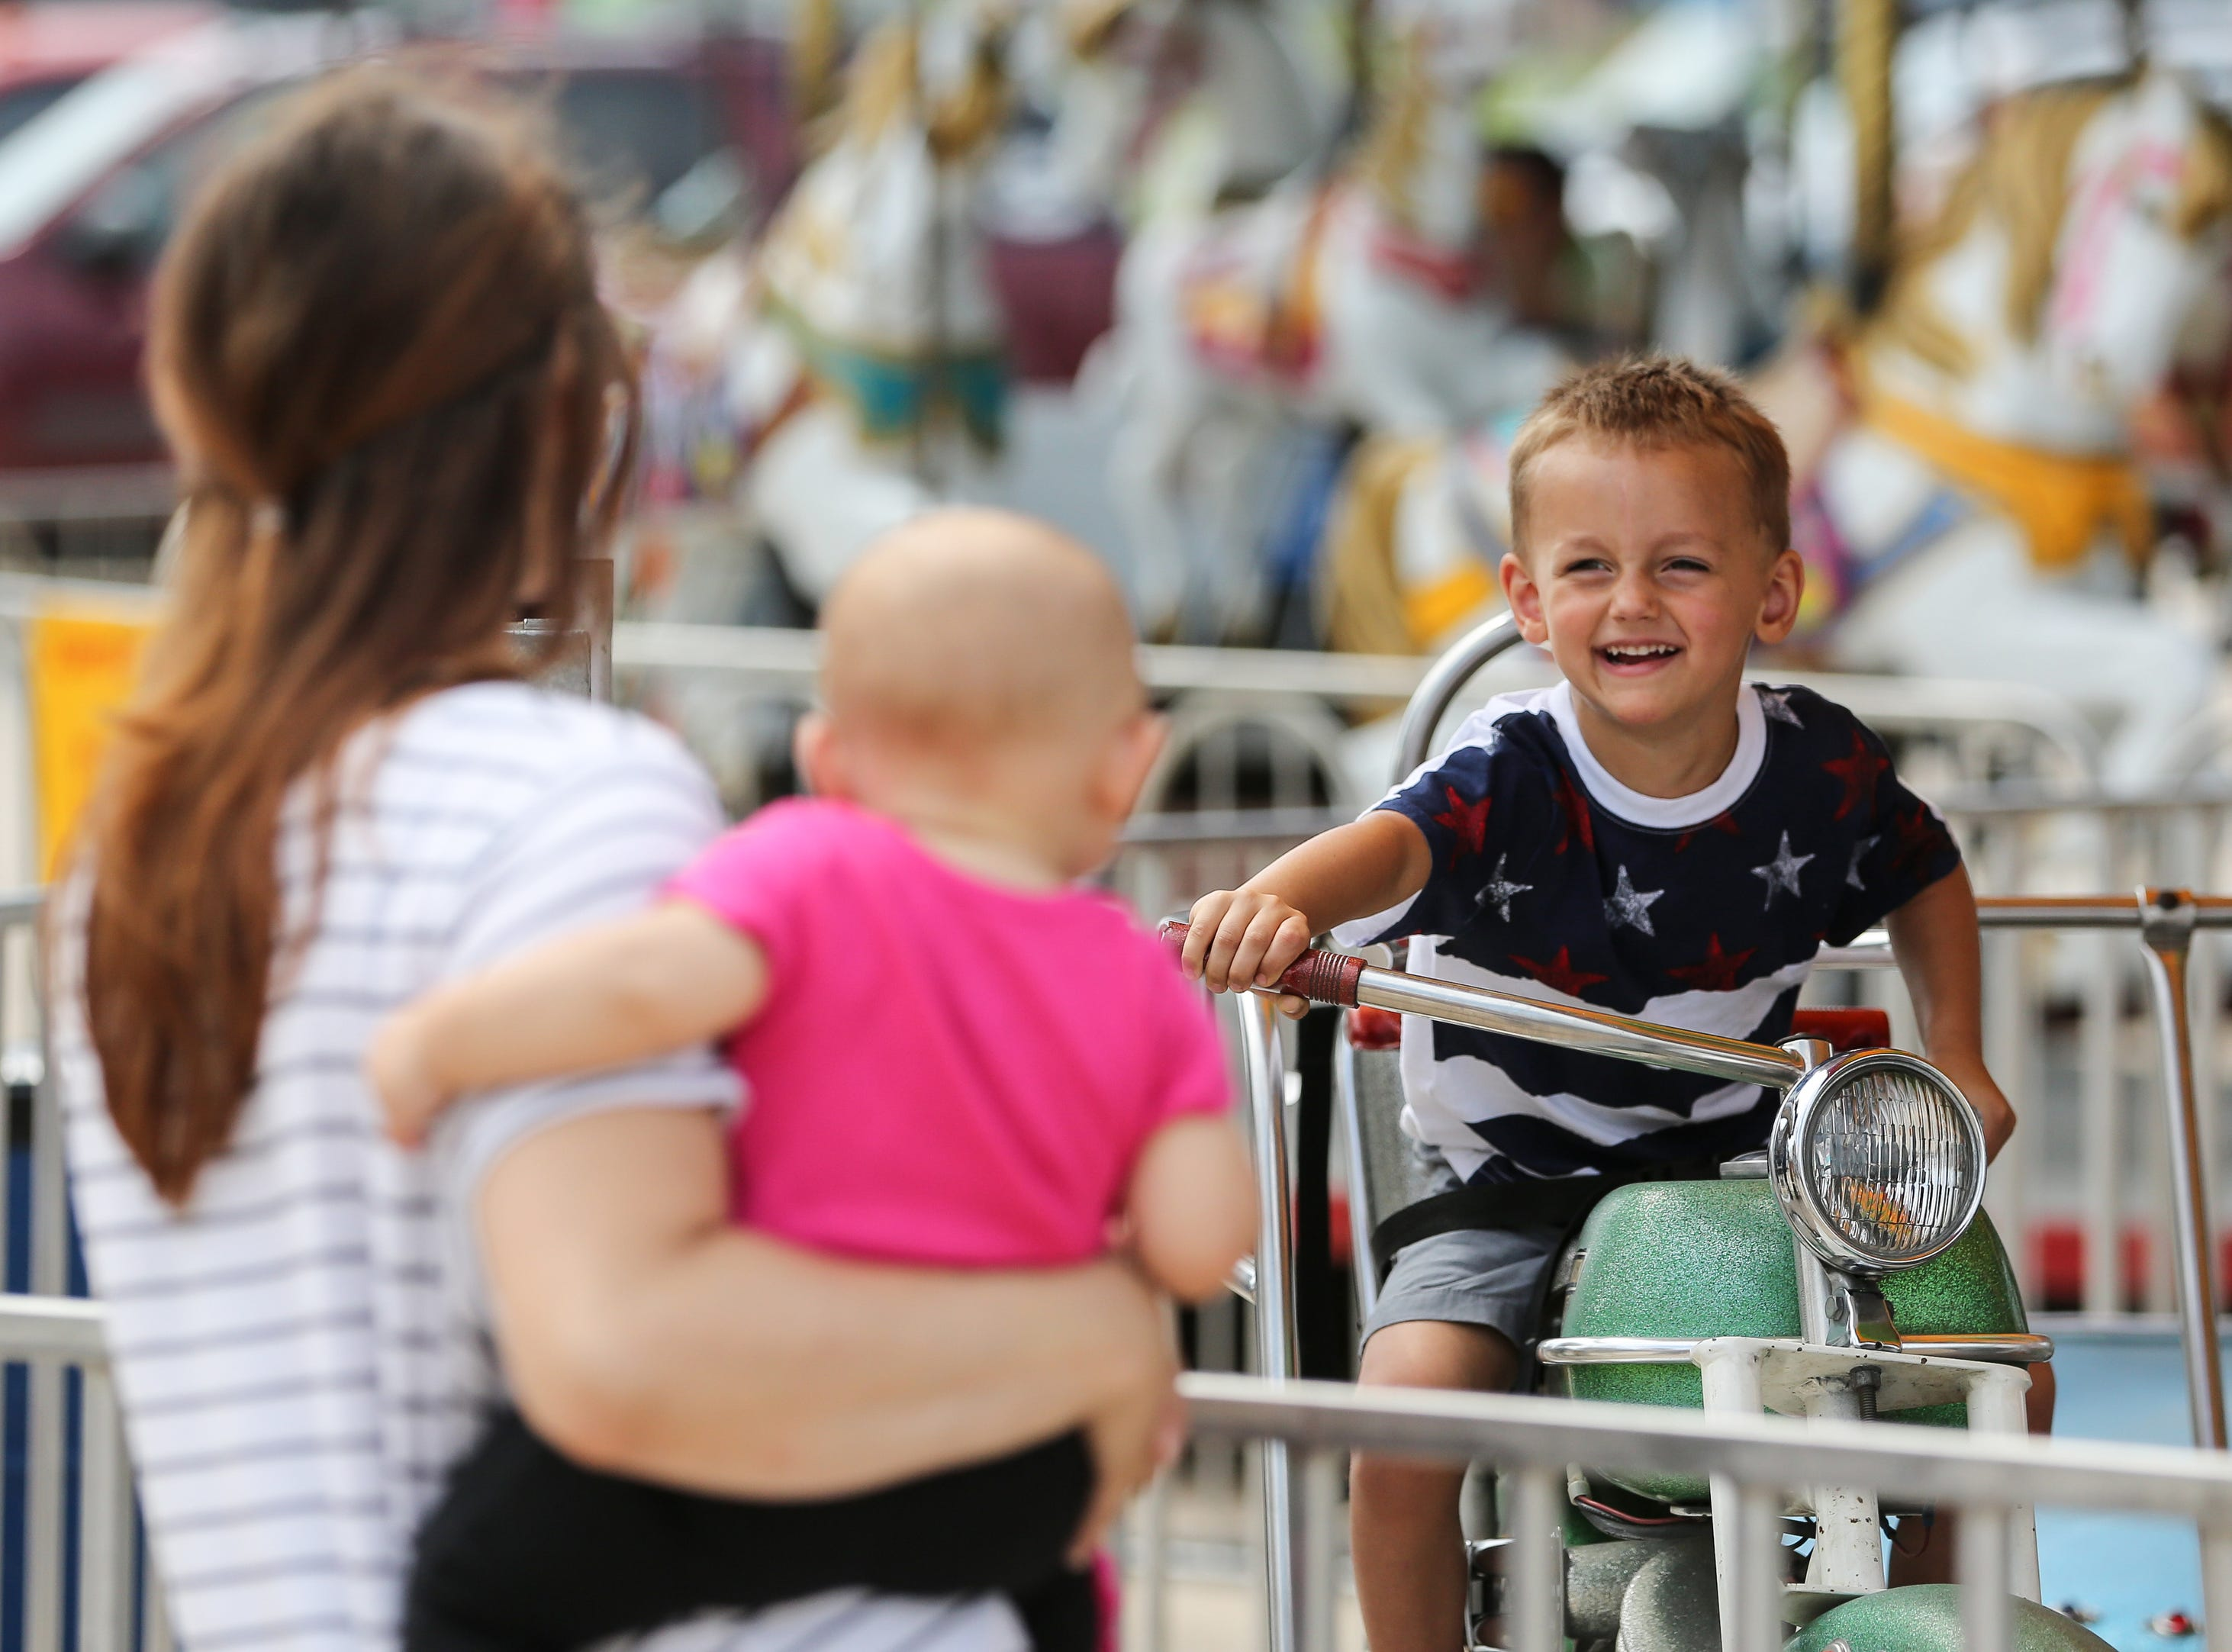 Robert Glaser, 3, smiles on the merry-go-round as he passes his mom and younger sister during Mishicot Riverfest Saturday, August 4, 2018, in Mishicot, Wis. Josh Clark/USA TODAY NETWORK-Wisconsin